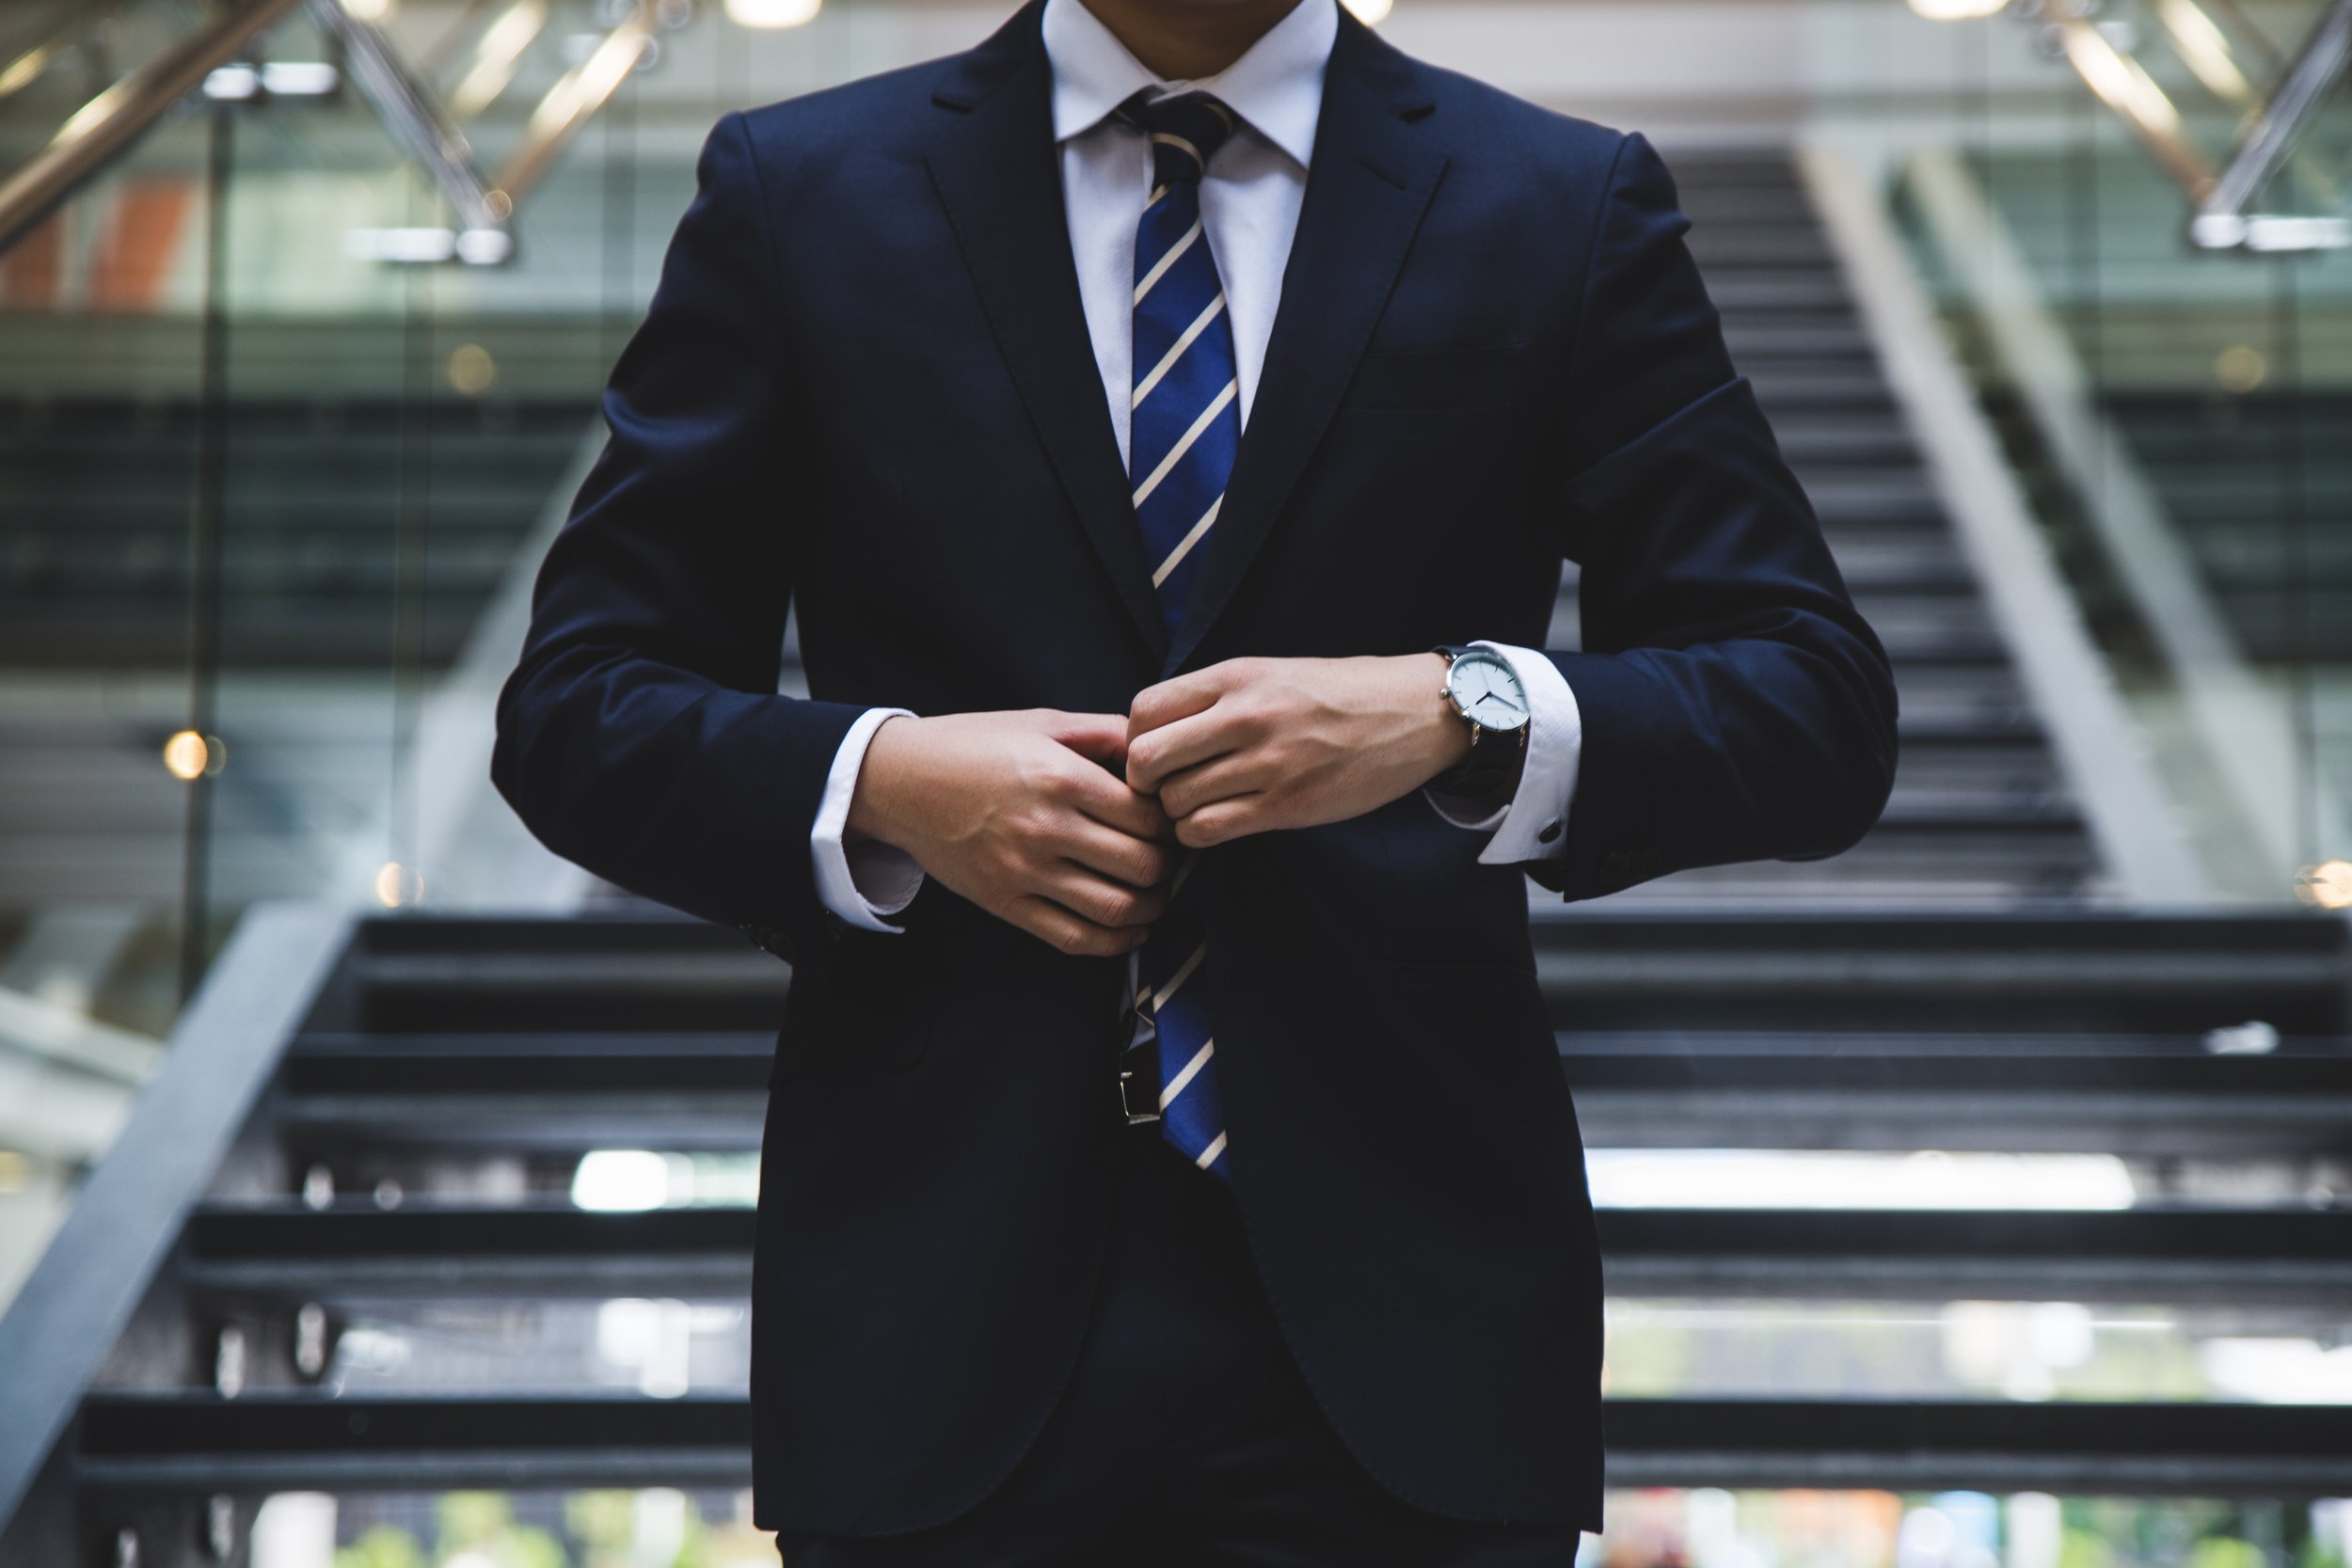 how to dress up for success